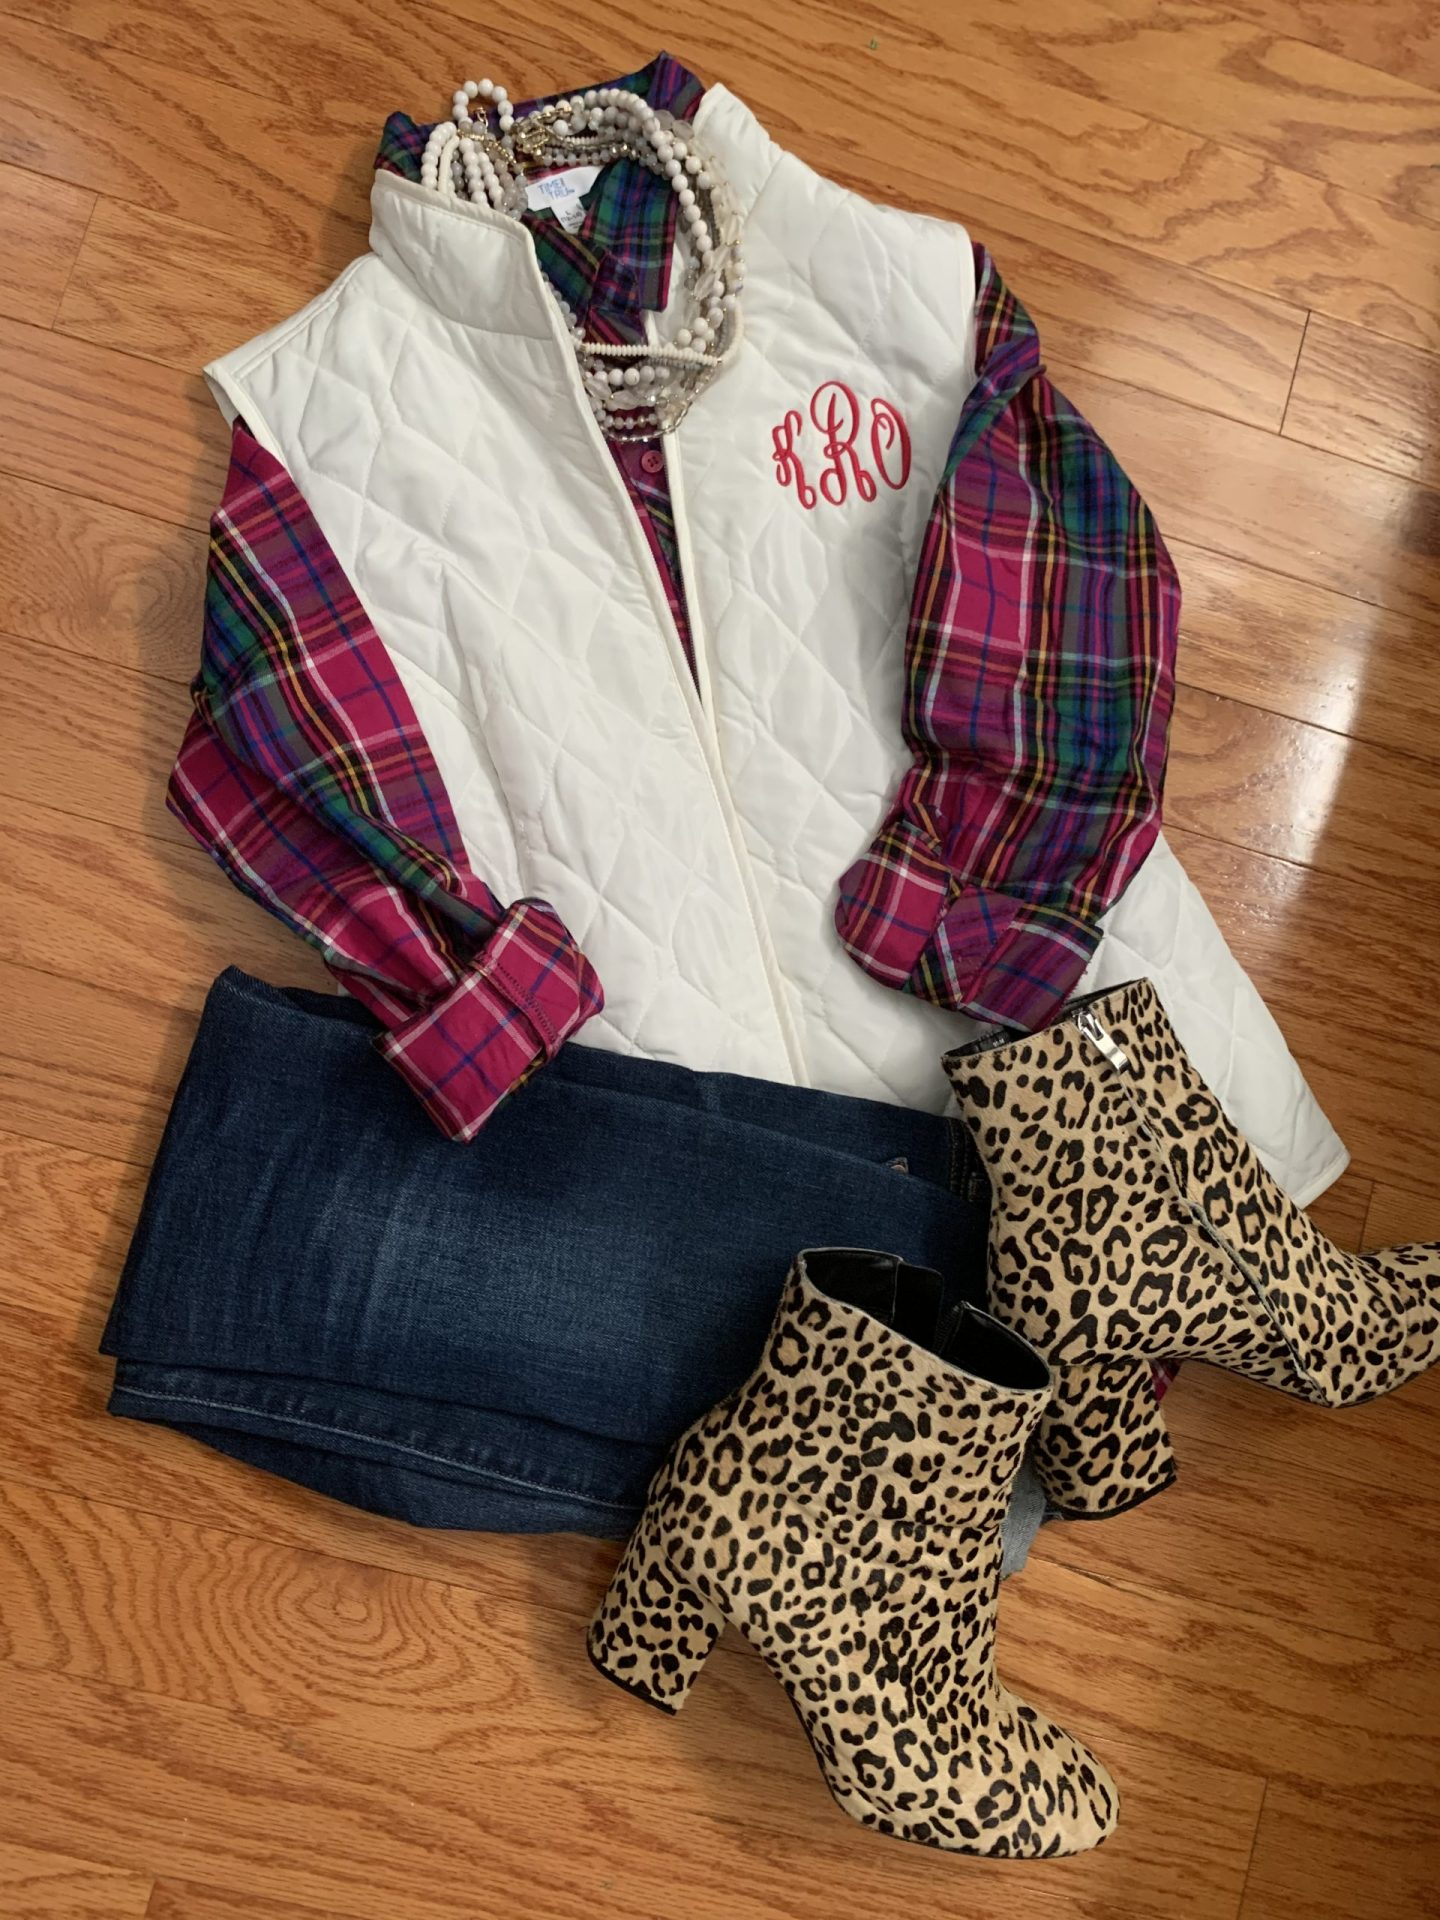 Plaid shirt + Vest + Jeans + Leopard Booties